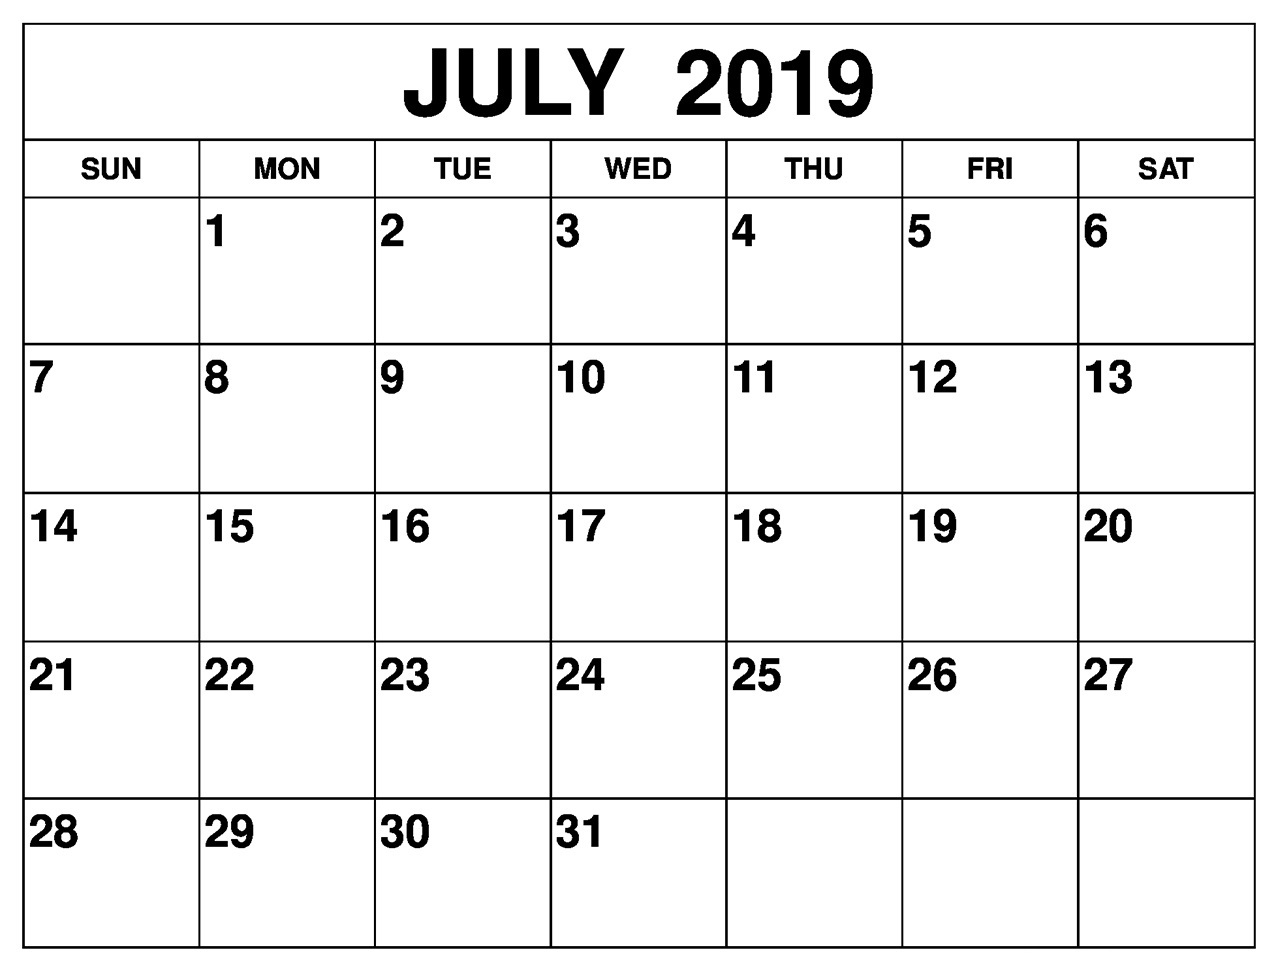 July 2019 Calendar Template Free Wincalendar Printable